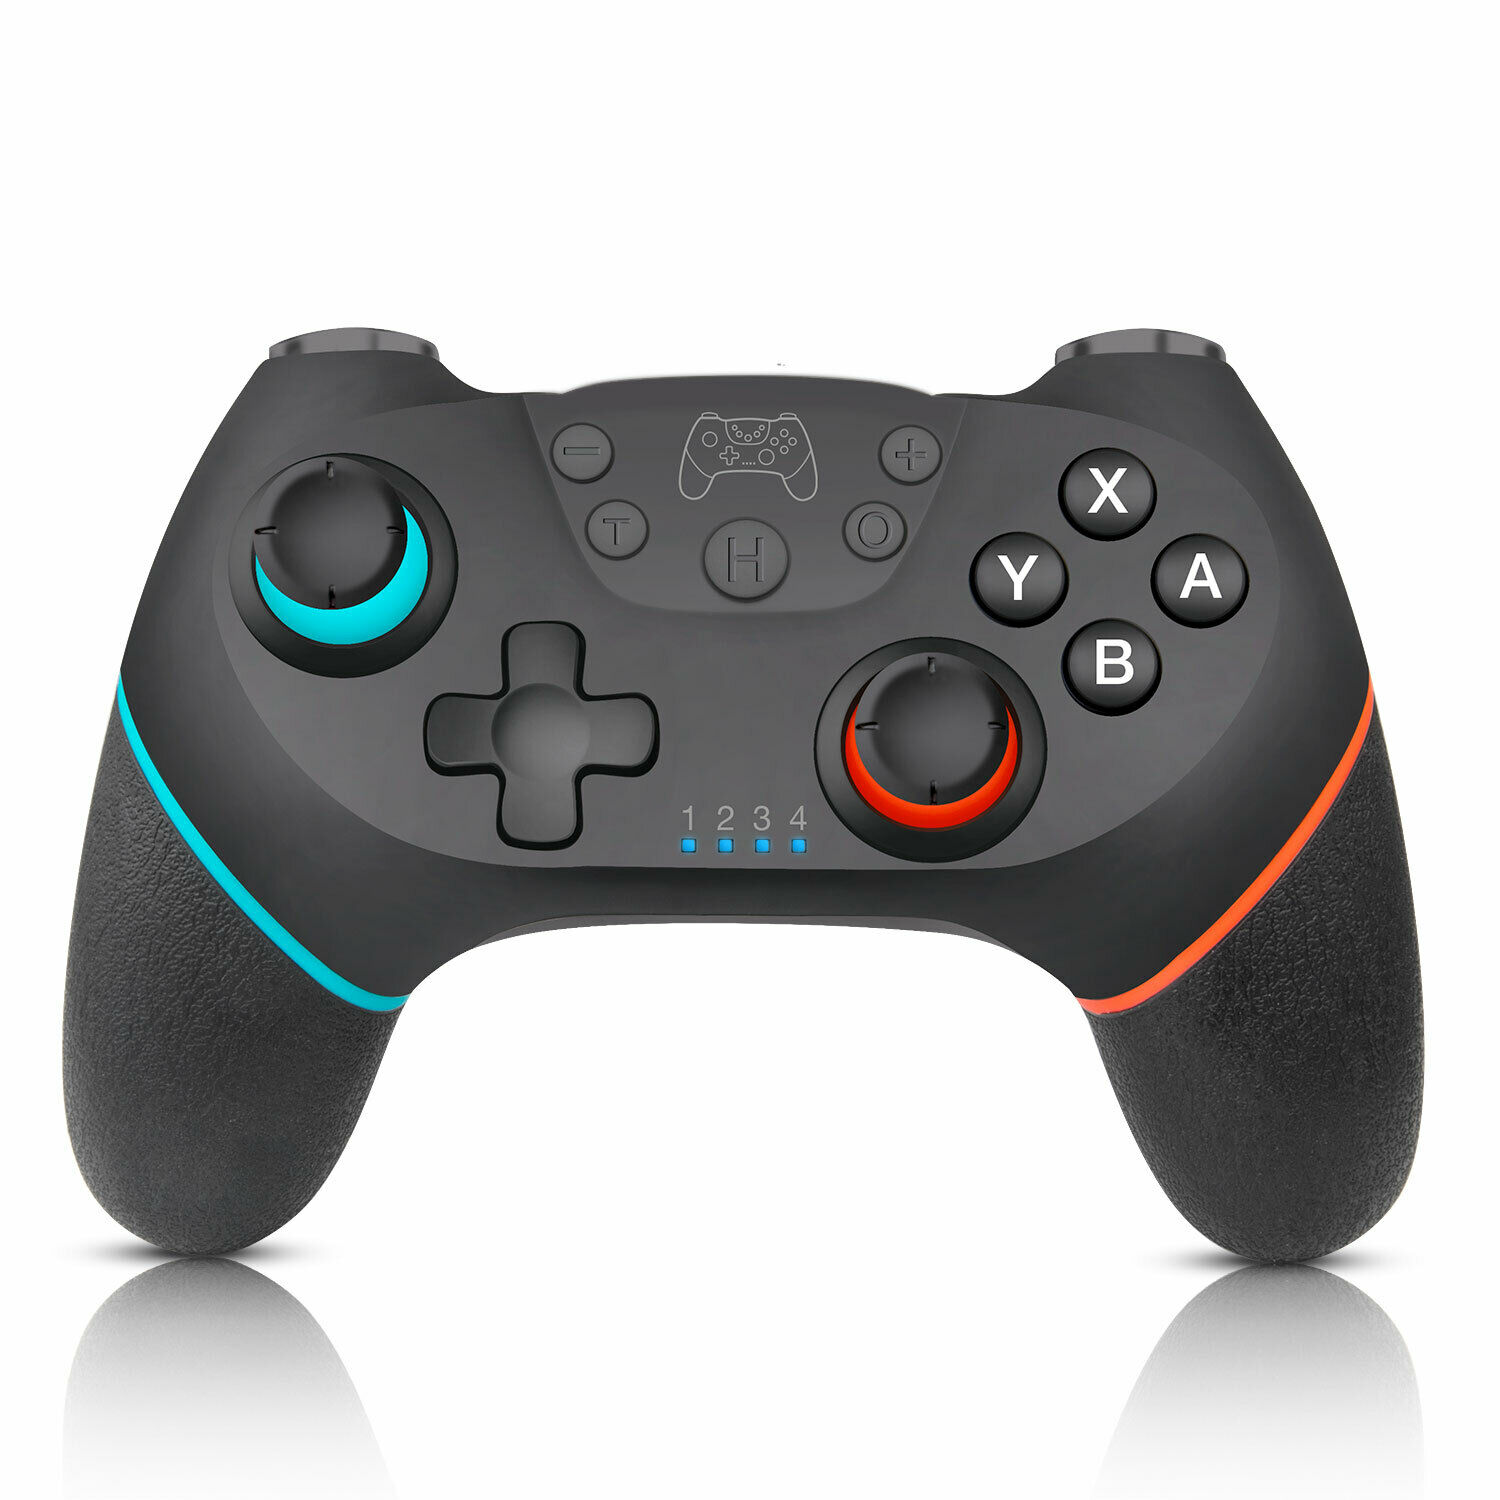 Black Wireless Pro Controller Gamepad Joypad Remote for Nint